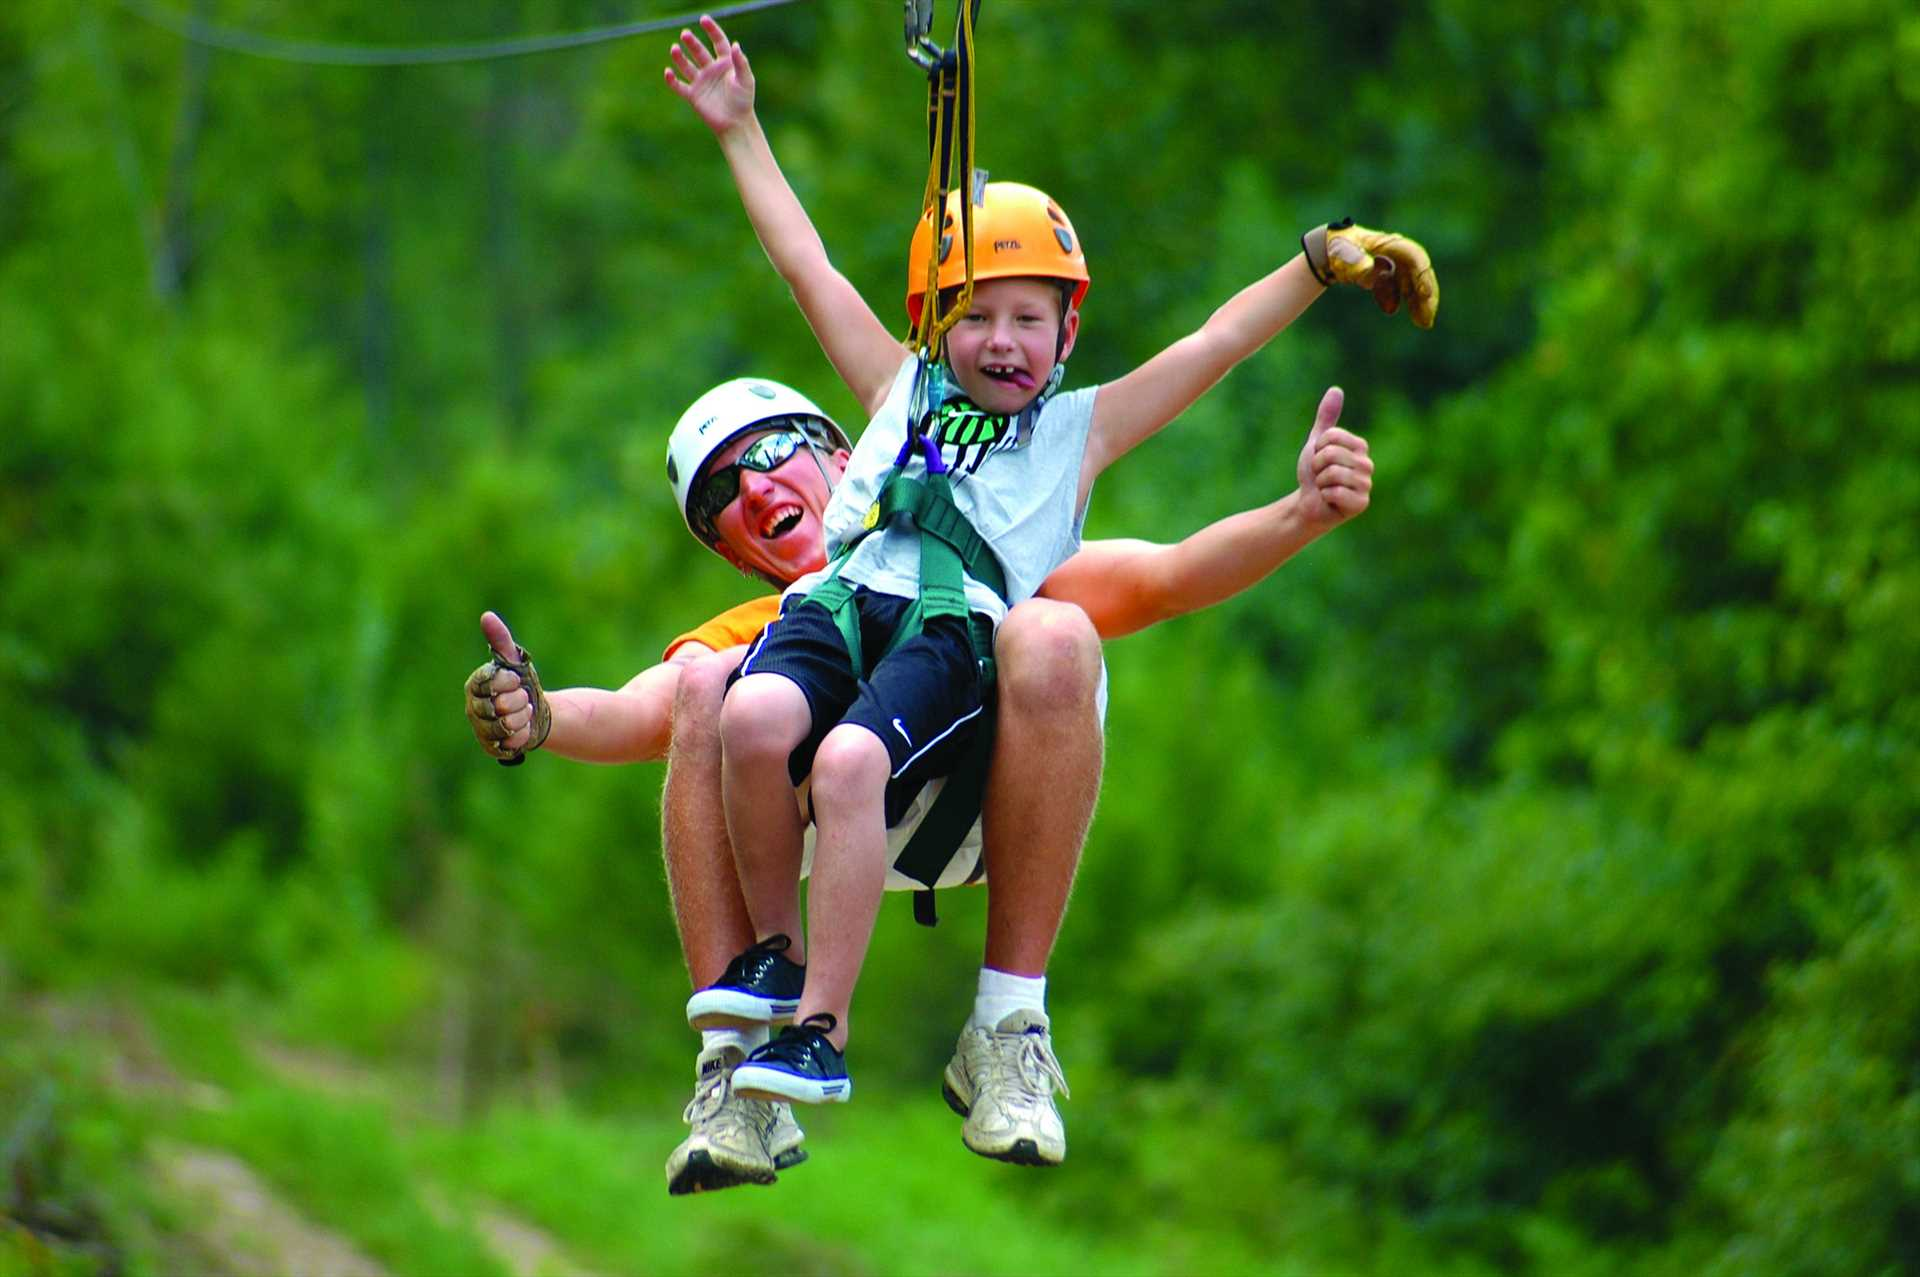 Lots of outdoor adventures including ziplining!